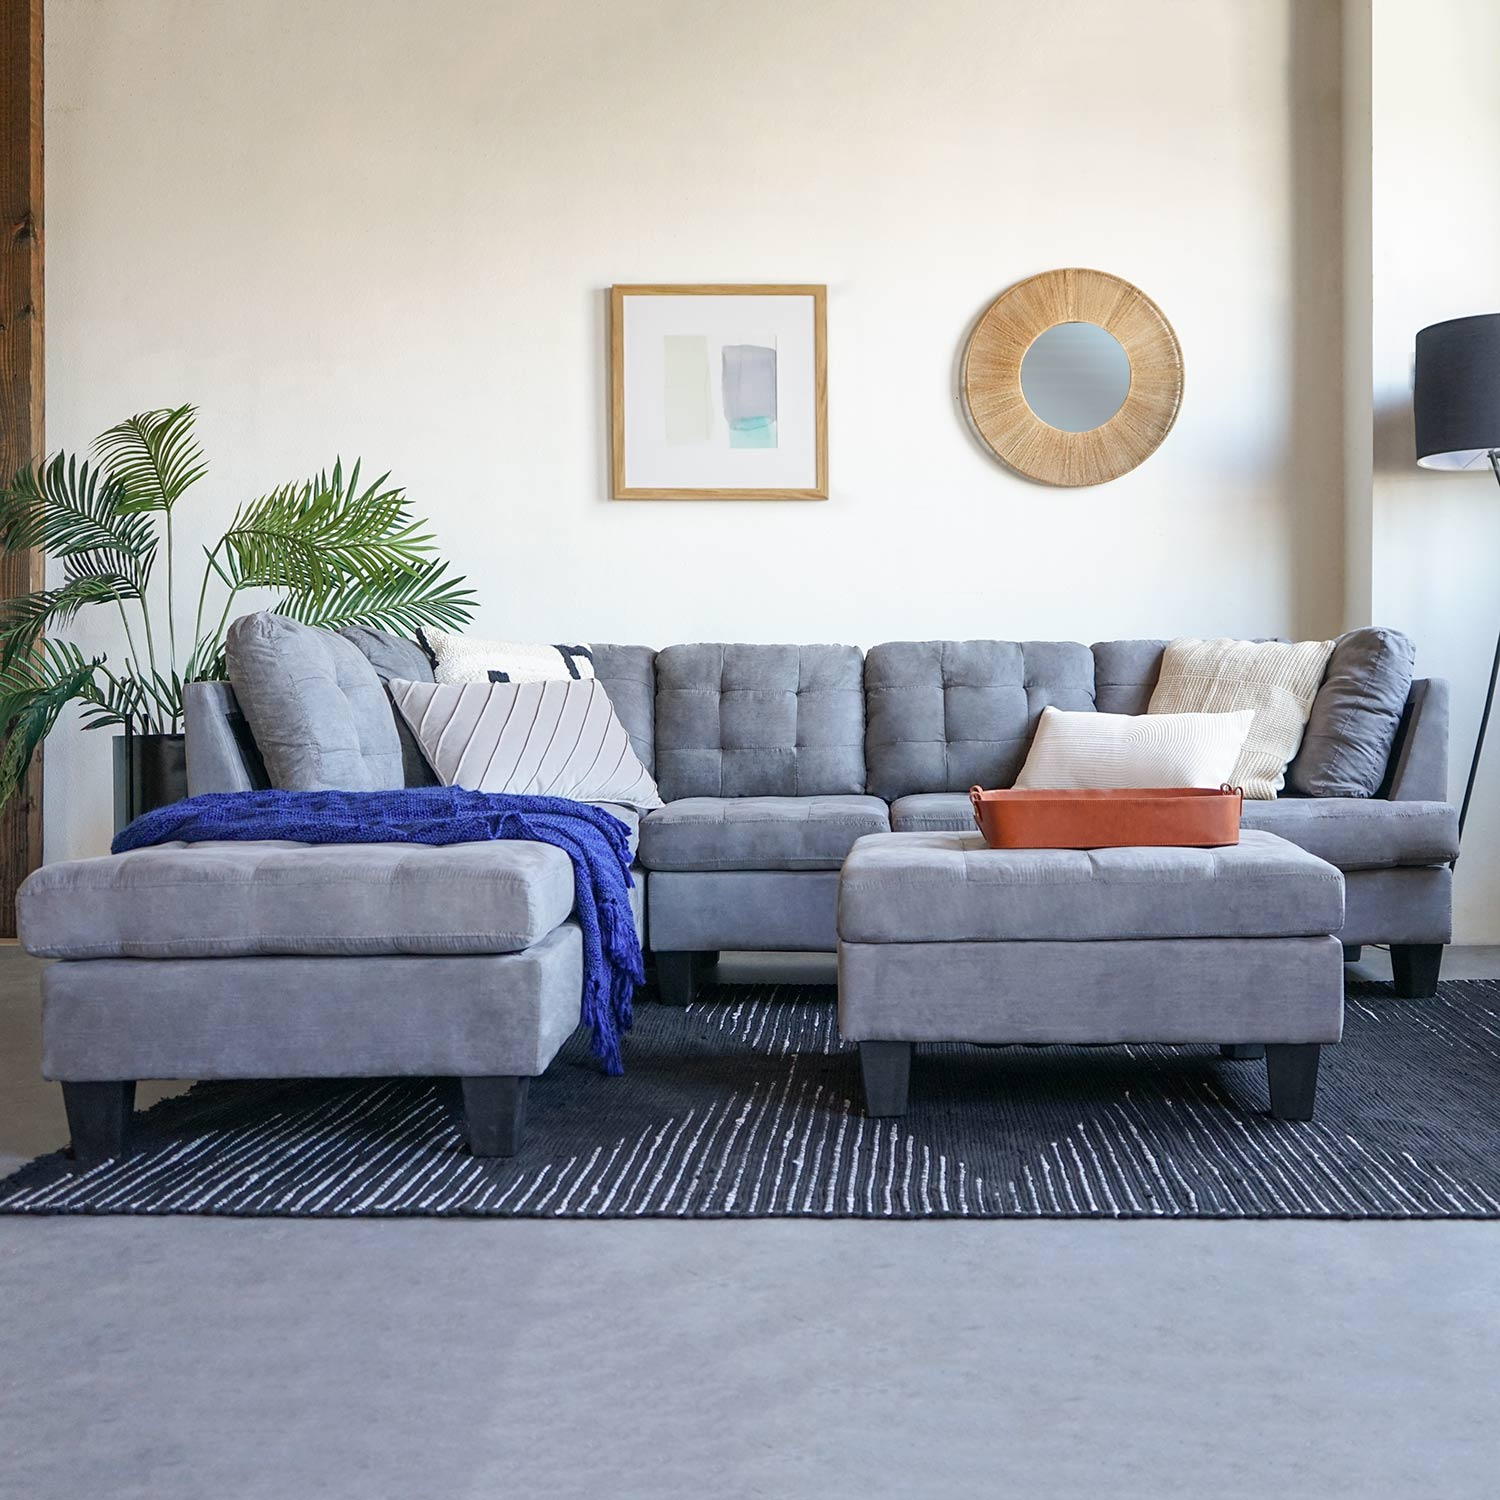 2 Piece Modern Large Tufted Grey